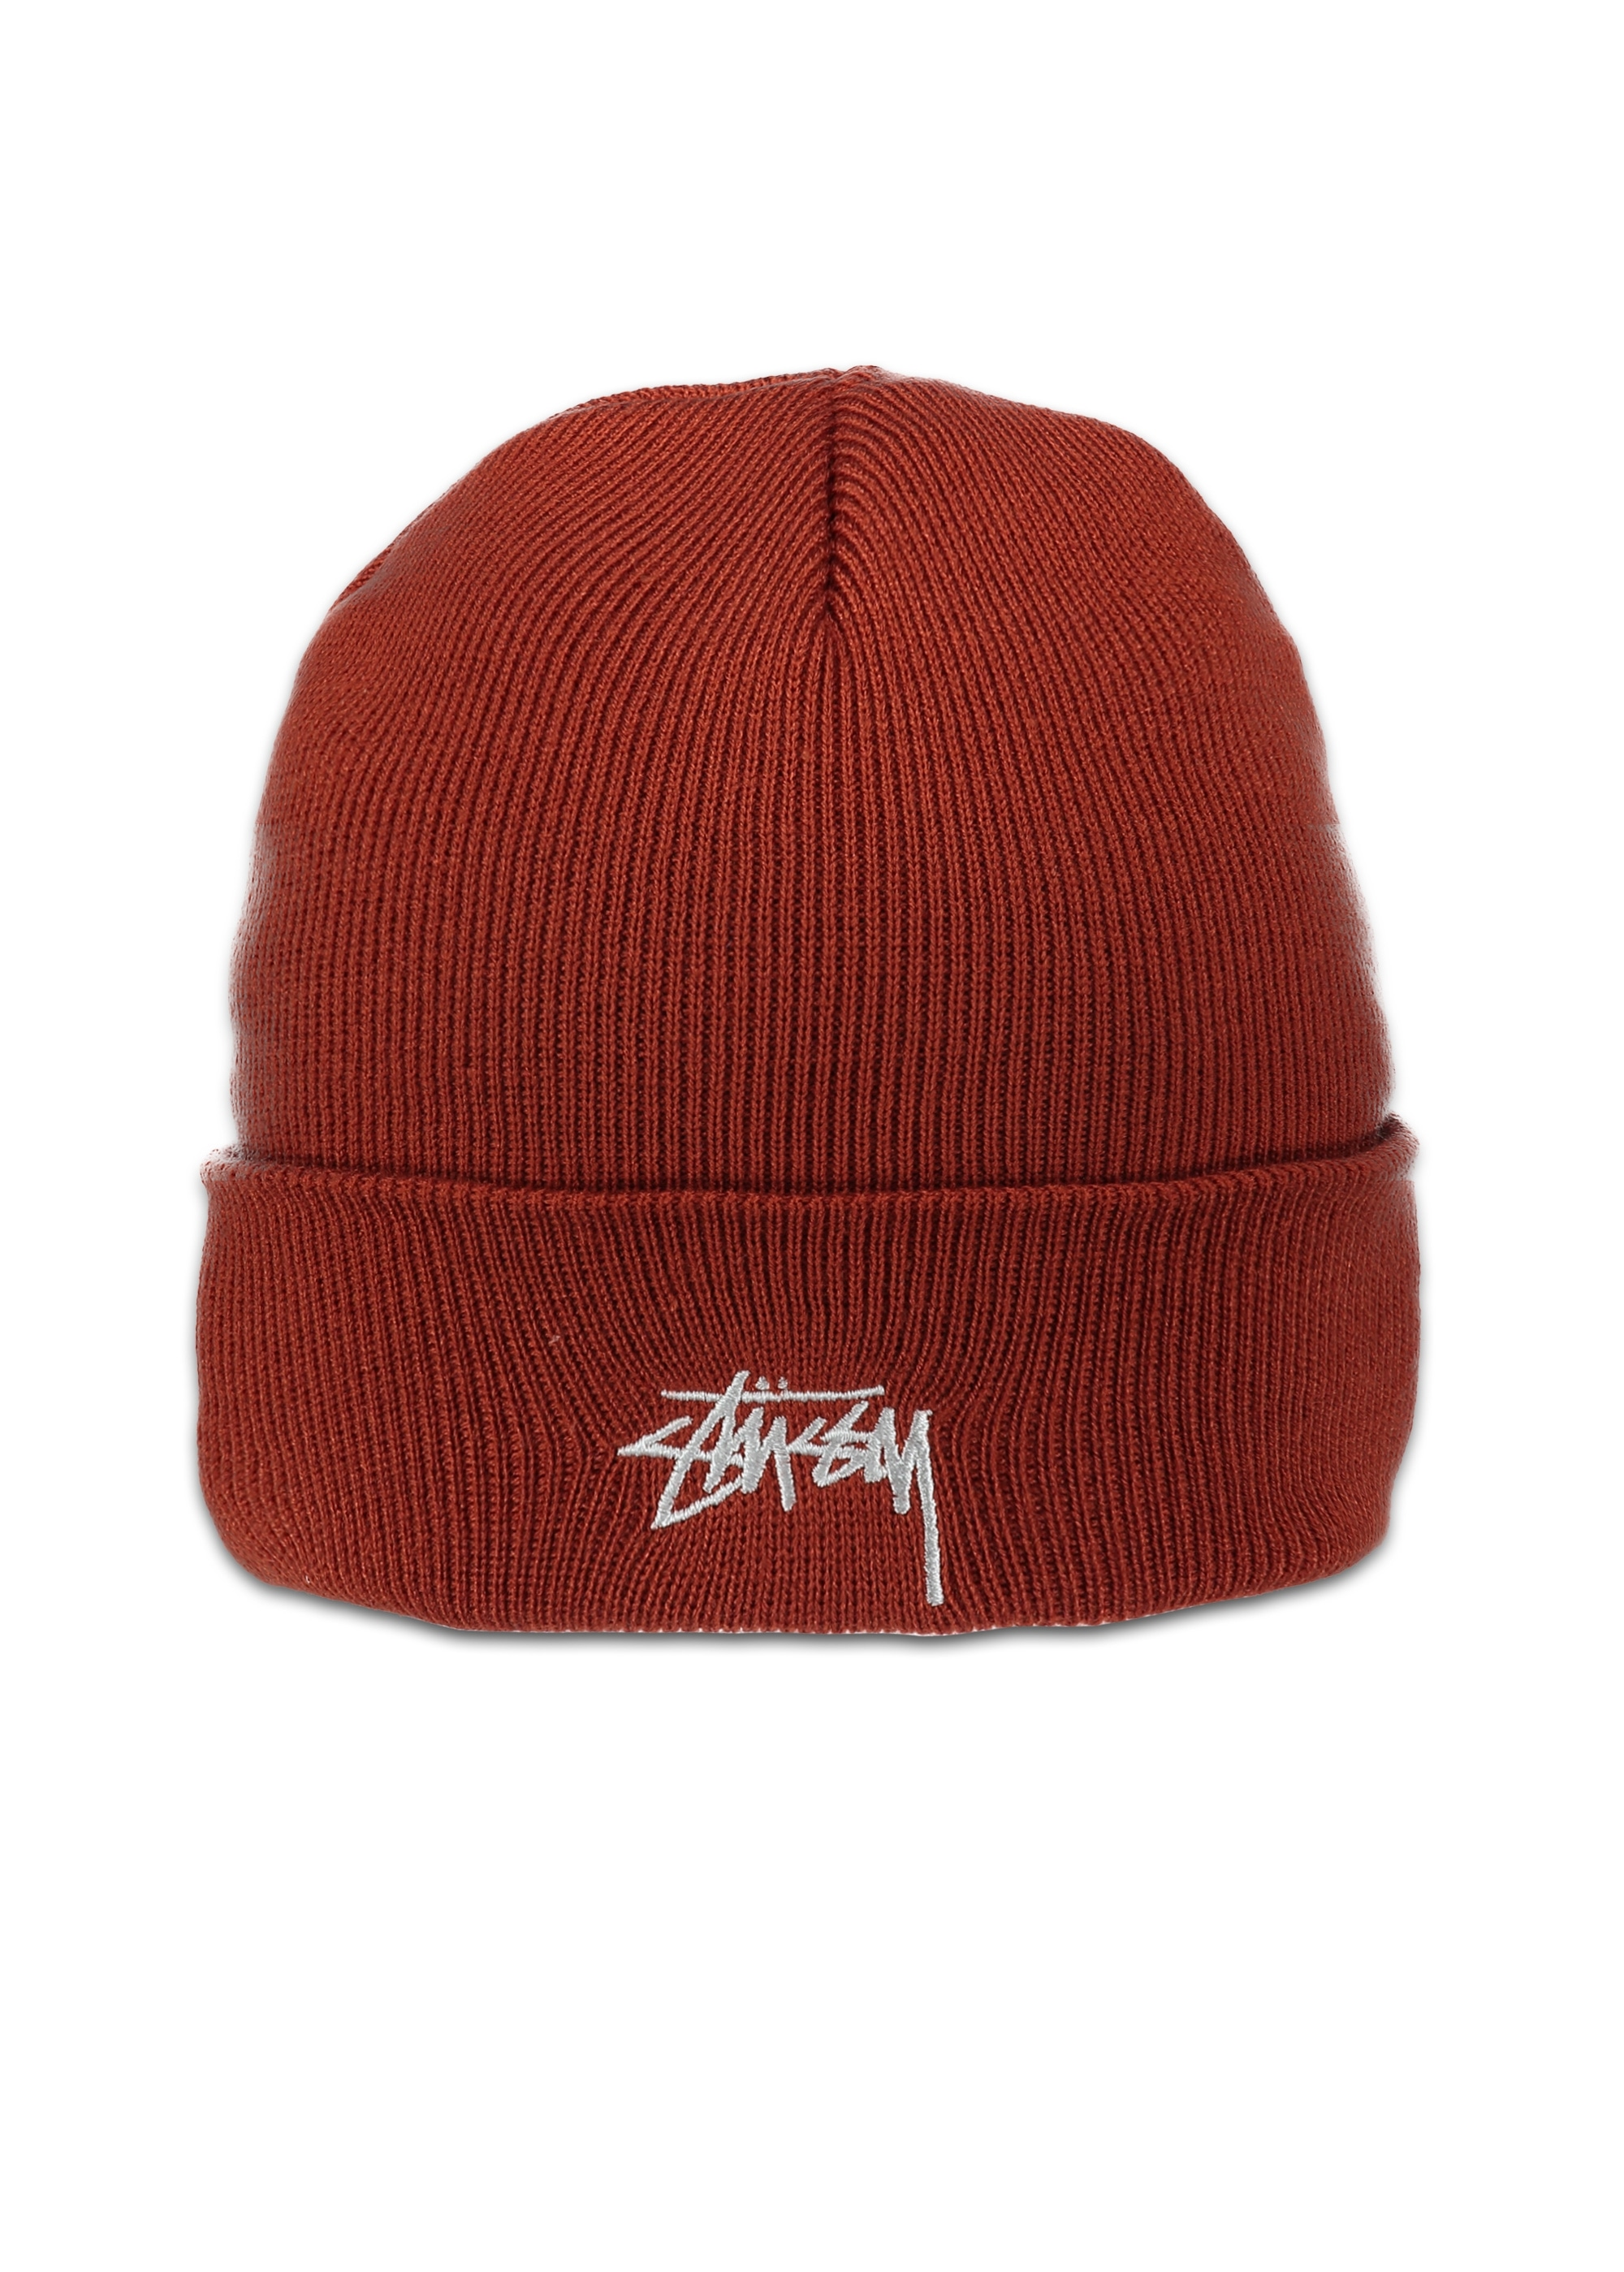 Stussy Stock FA17 Cuff Beanie - Rust - Headwear from Triads UK e889b03b4c3